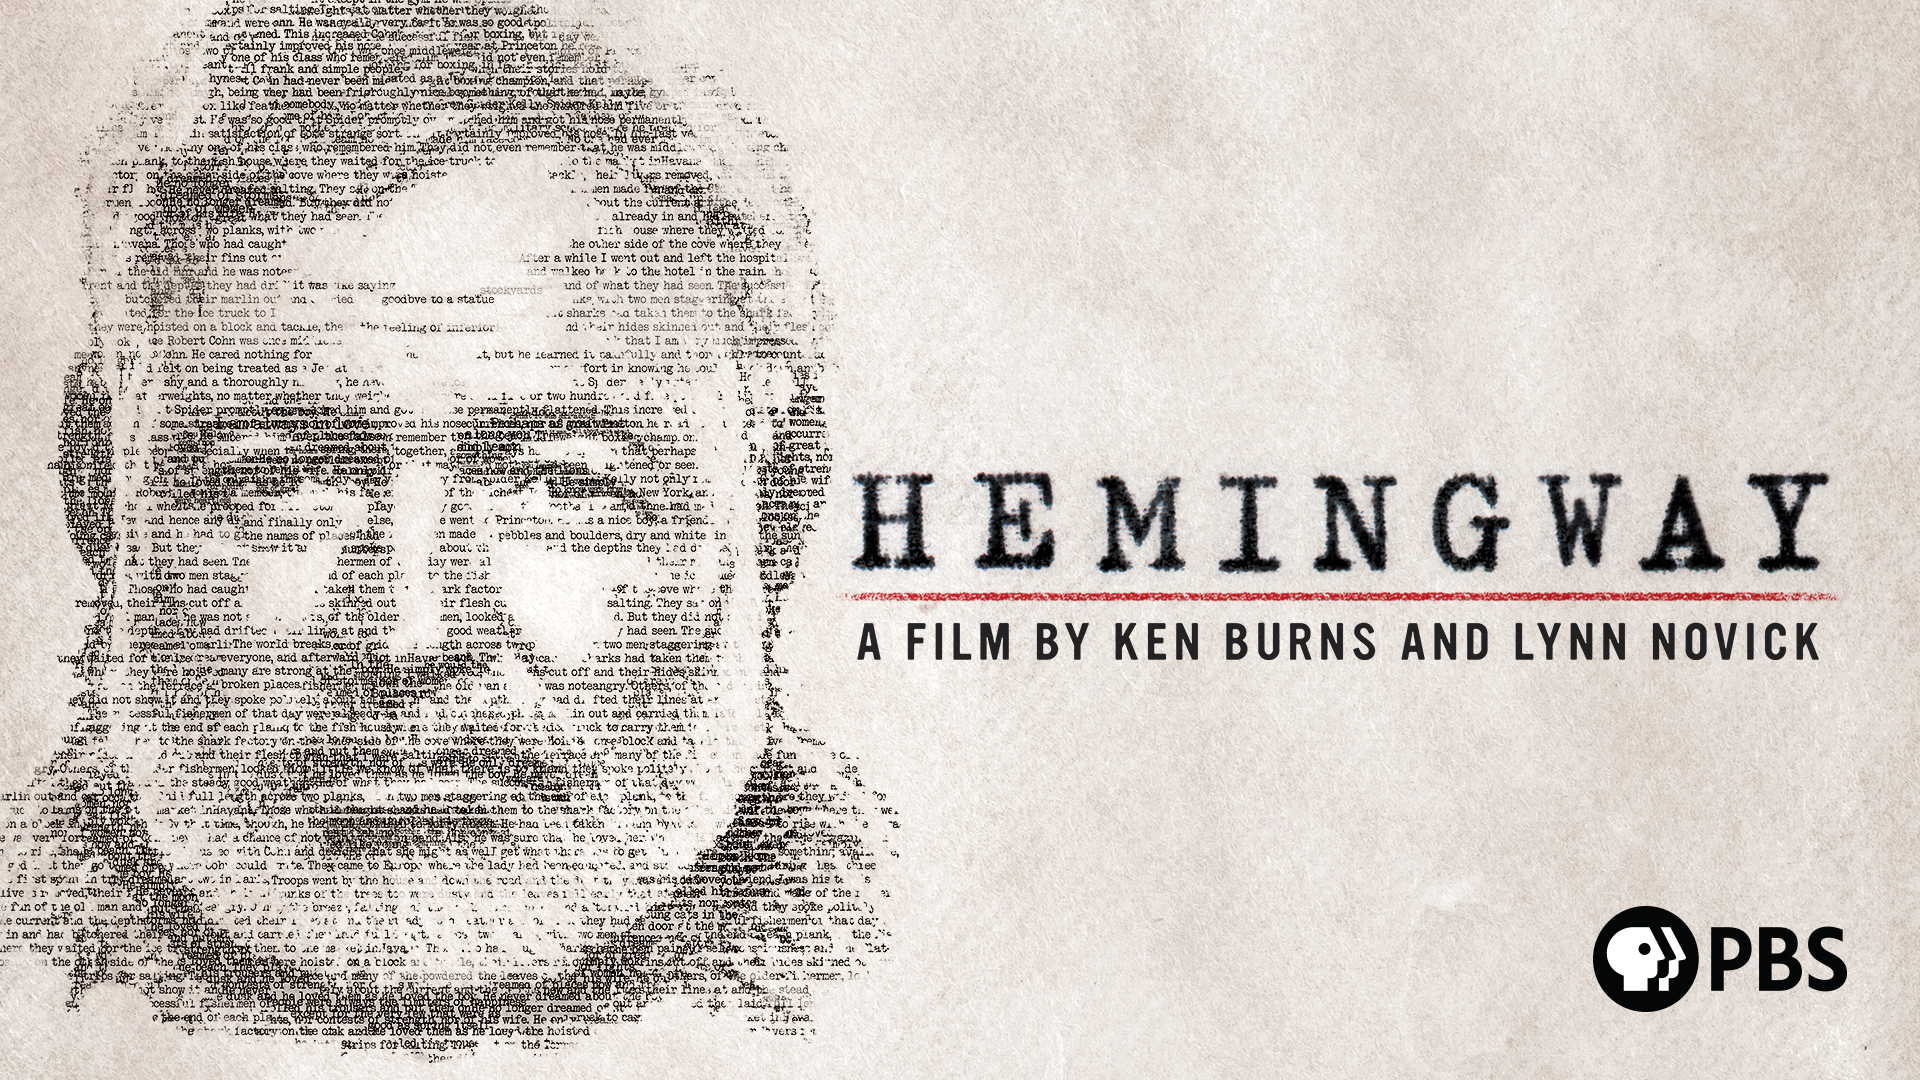 Hemingway: A Film by Ken Burns and Lynn Novick, Season 1